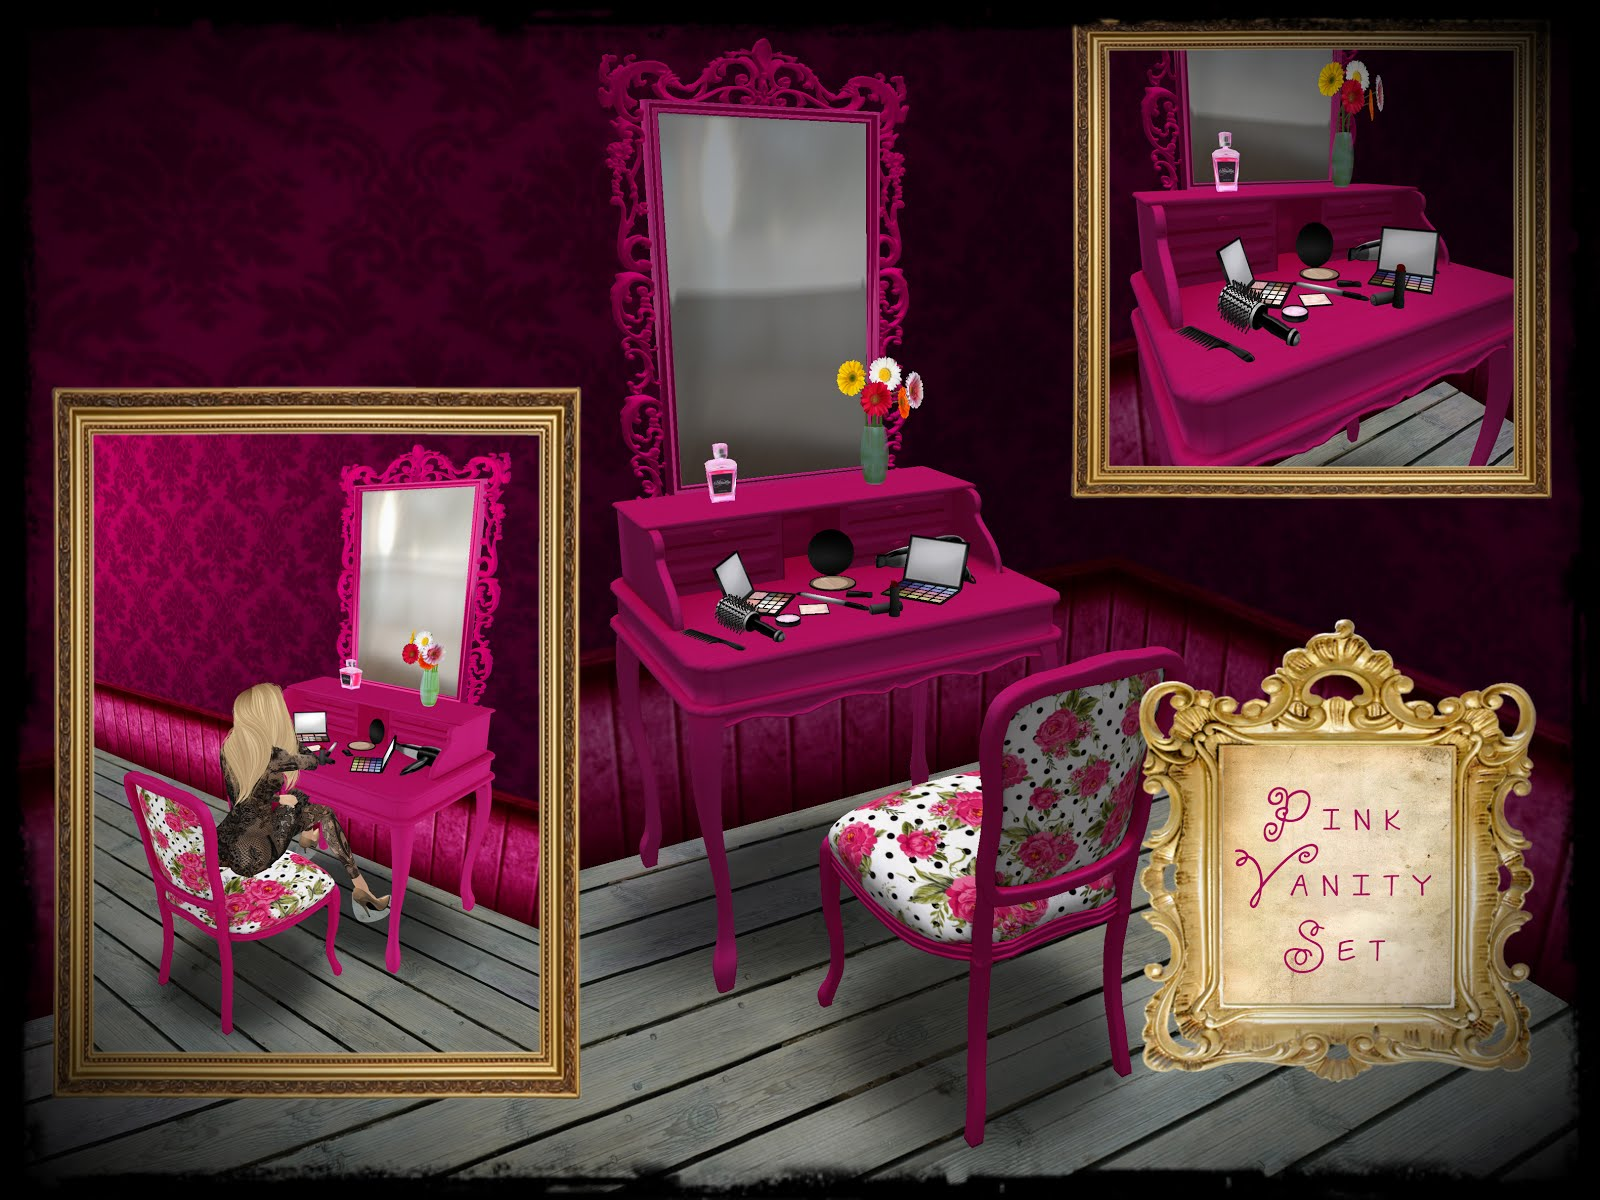 Boudoir couture furniture vitabela pink vanity set contains pink vanity with all make up set on it with matching lovely chair with 6 vanity poses inside check this lovely furniture in geotapseo Gallery